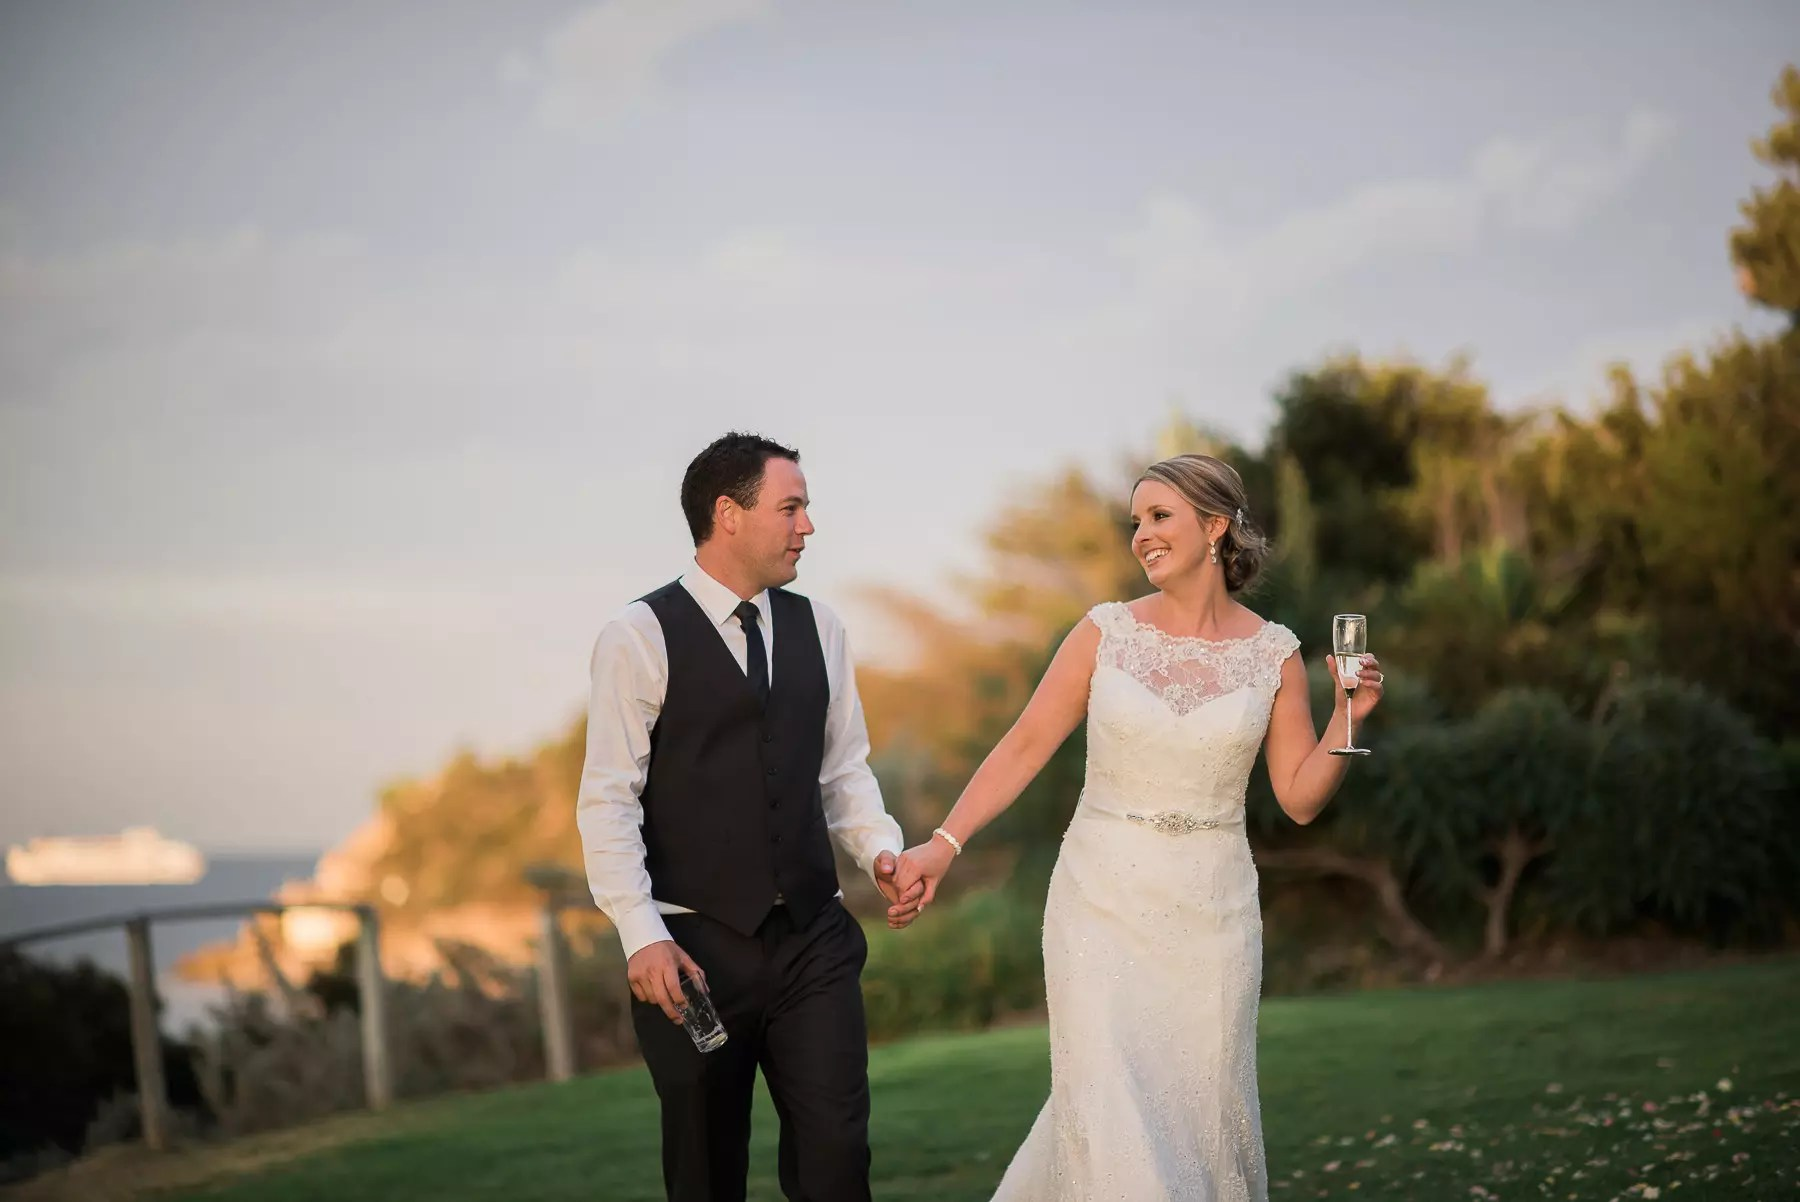 Wedding at Portsea Hotel cute couple